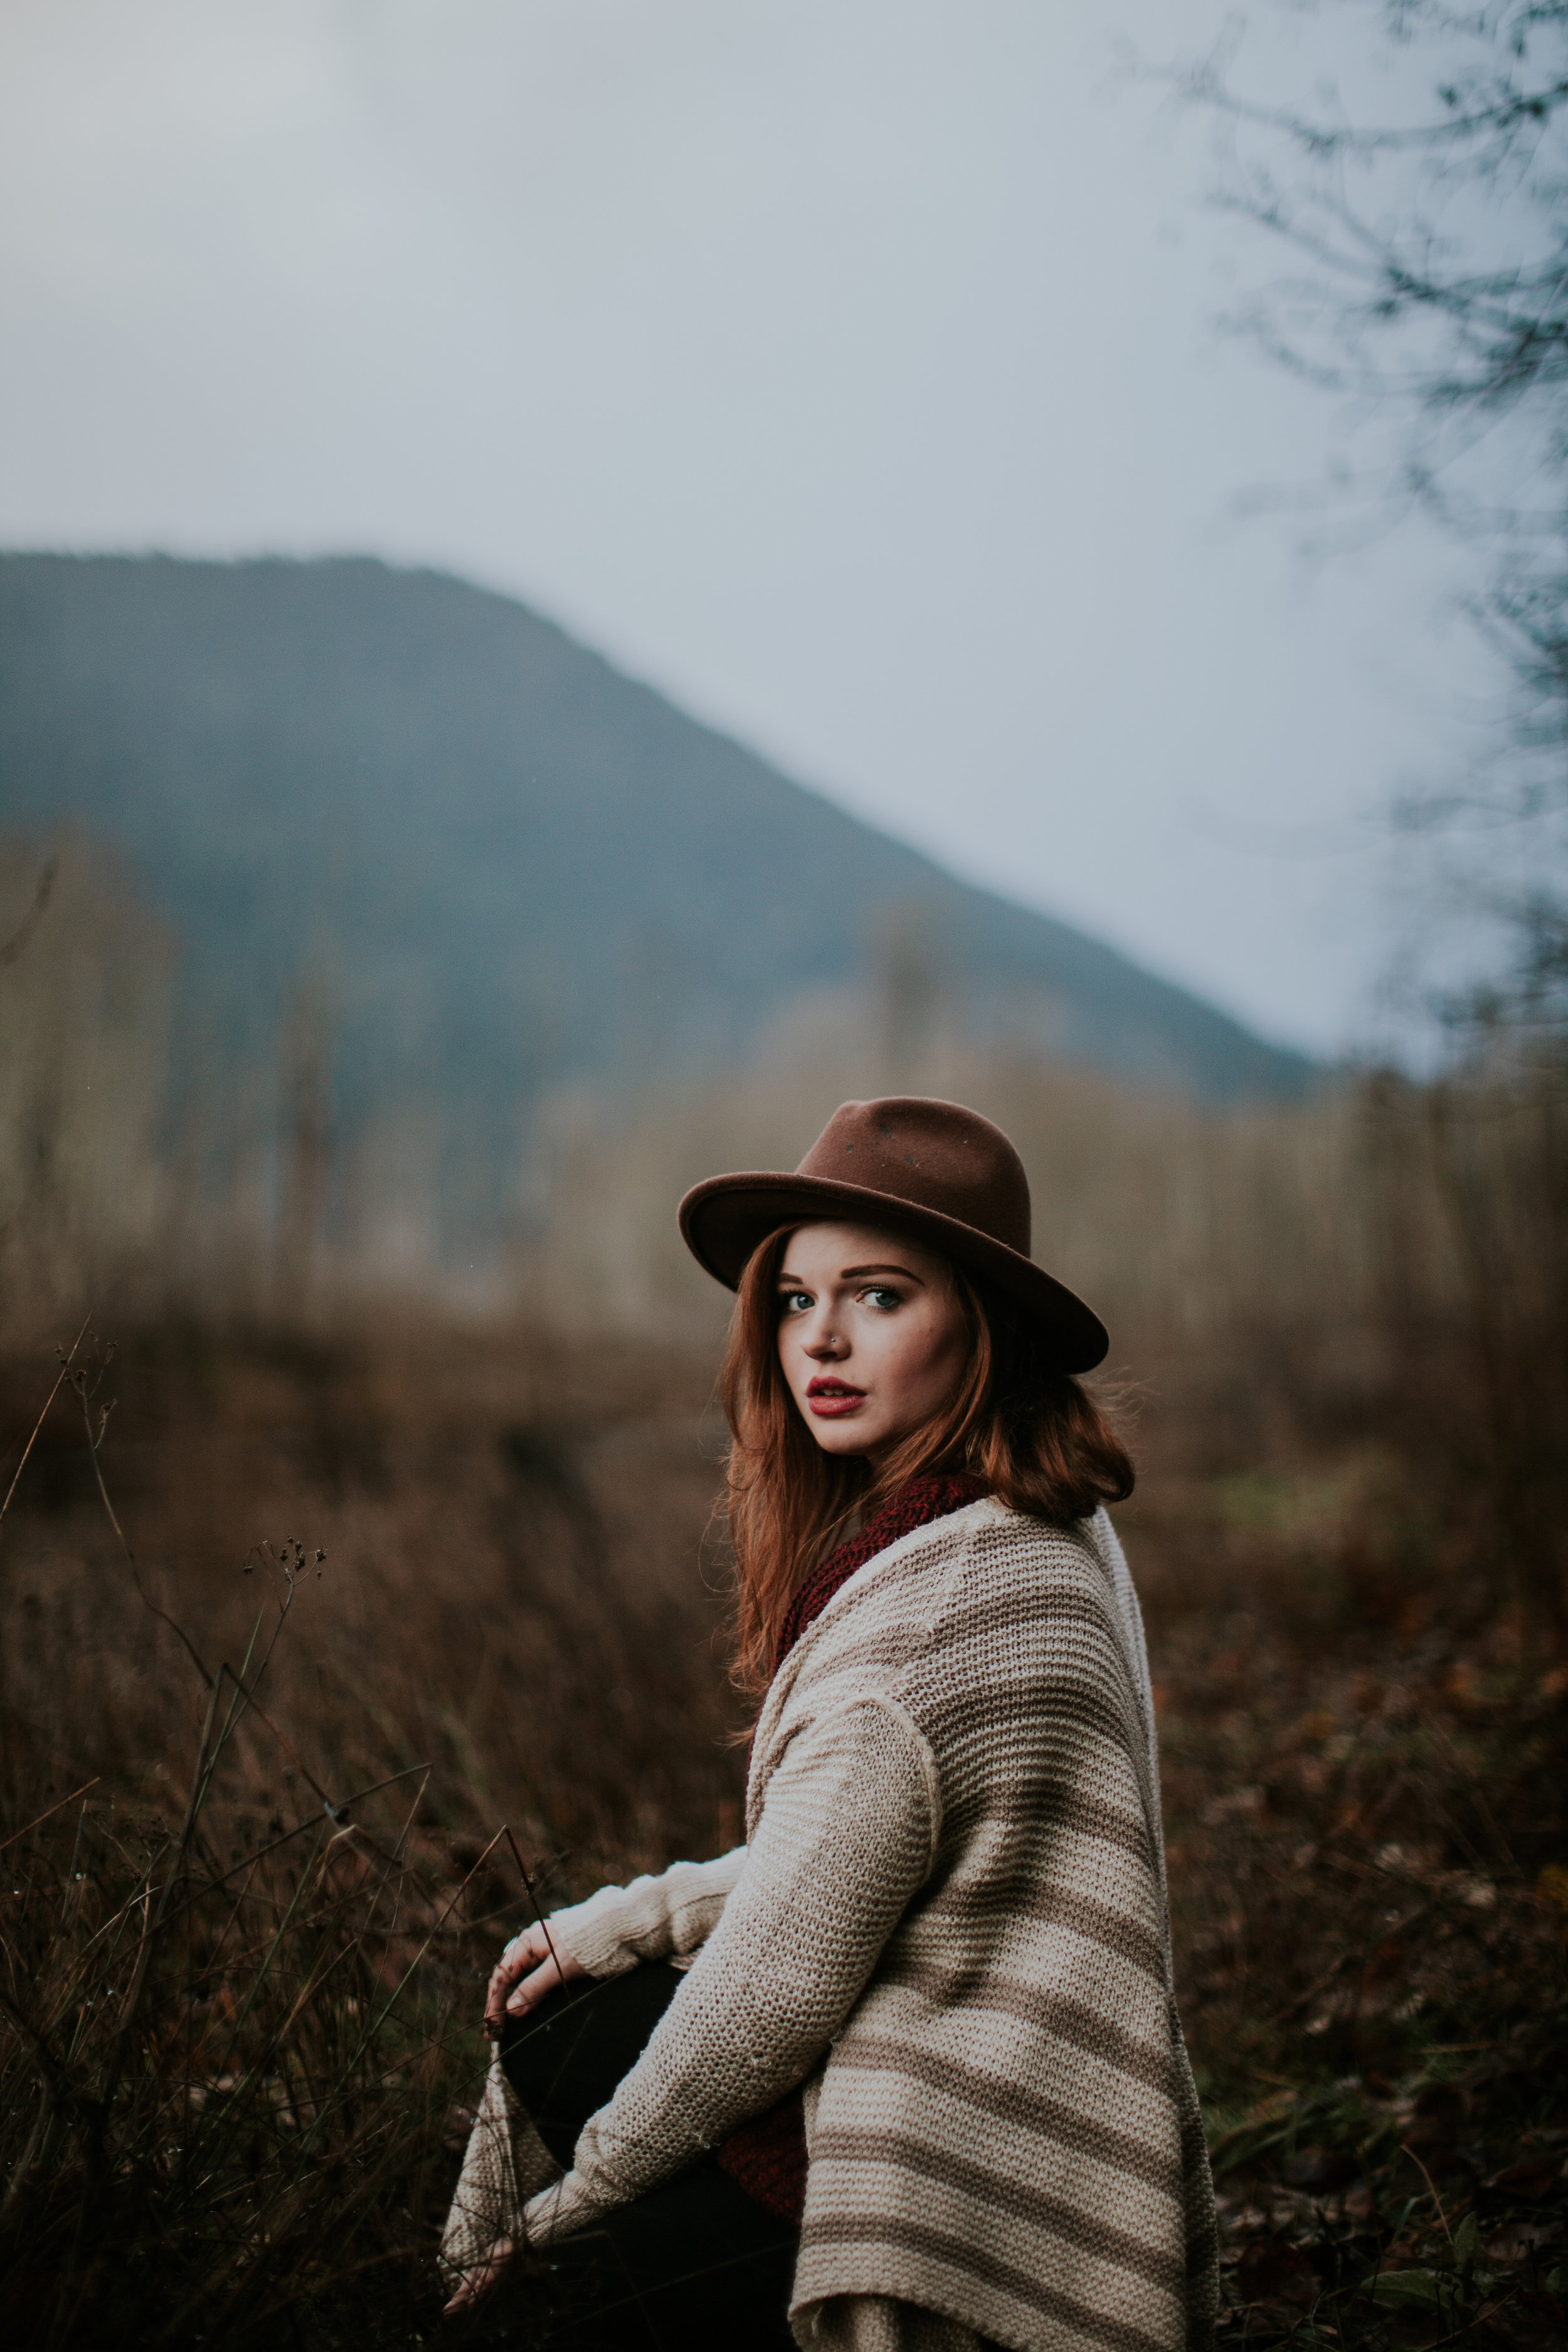 Port-Angeles-portrait-olympic-peninsula-photographer-kayla-dawn-photography-kayladawnphoto33.jpg